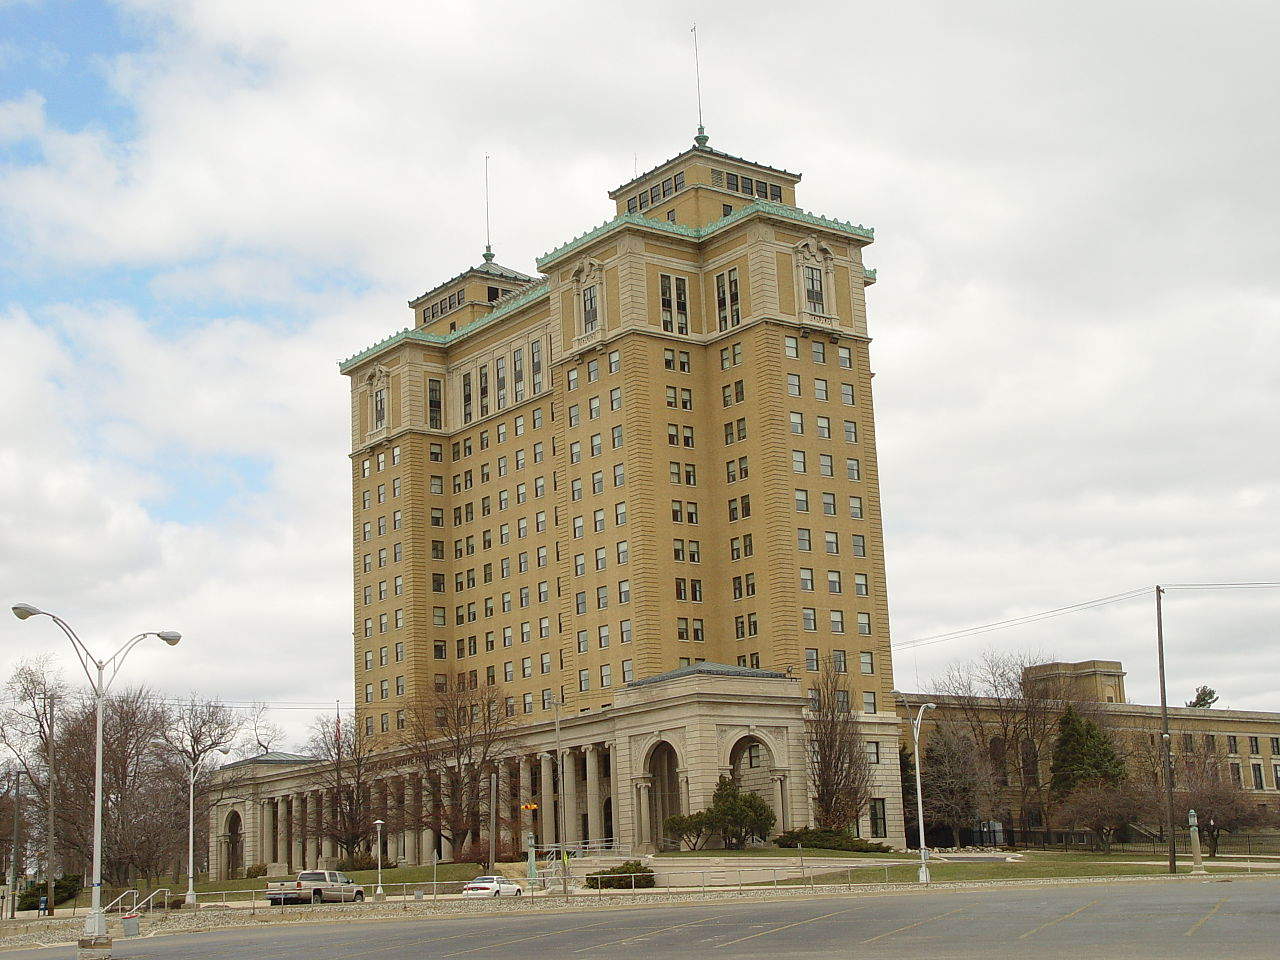 The Hart-Dole-Inouye Federal Center was built in 1928 and was originally the main building of the Battle Creek Sanitarium Complex.